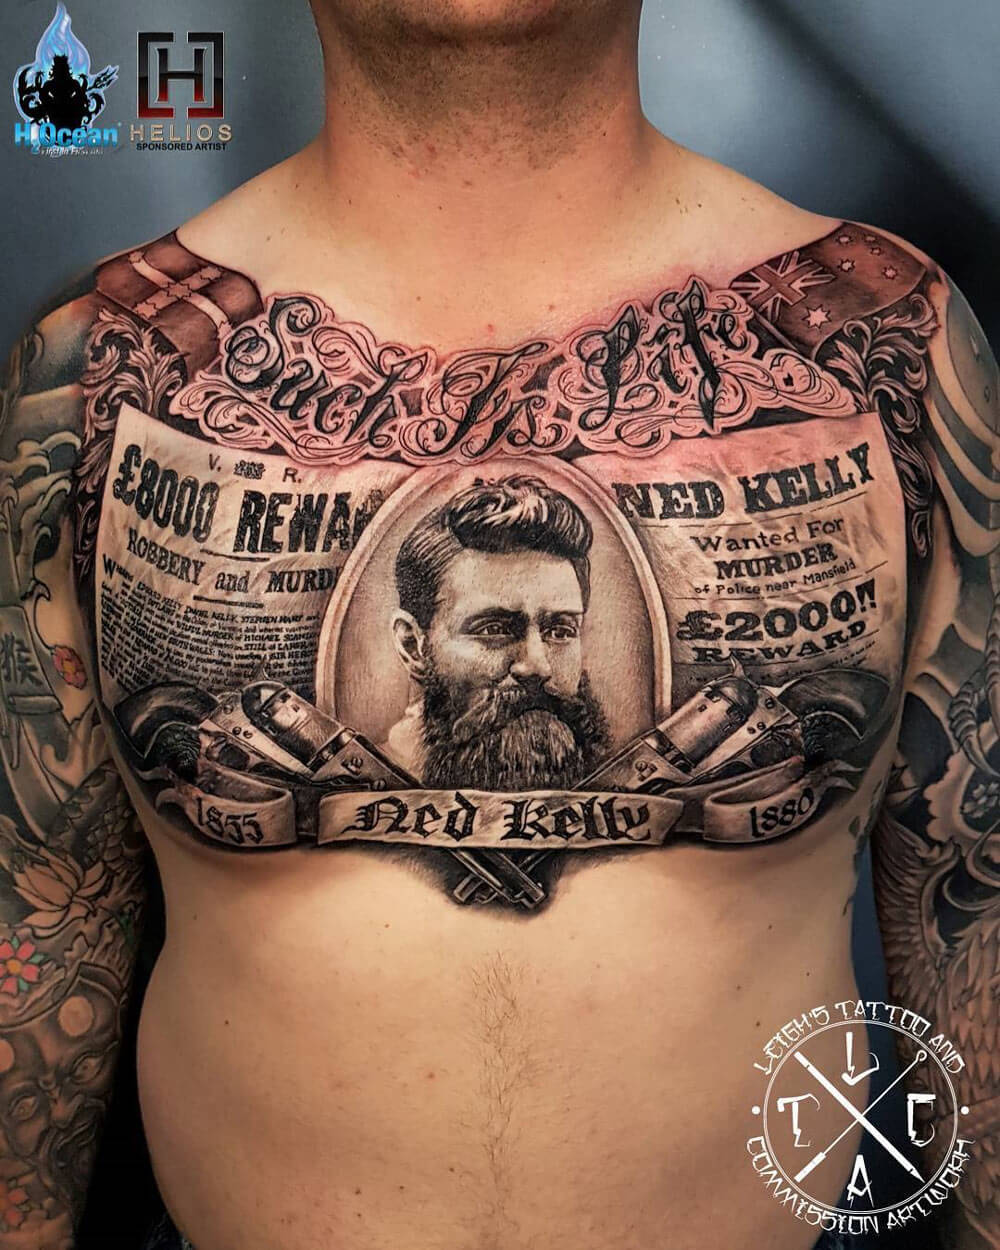 aea0329c2 To help you get those creative juices flowing, we dug around and compiled  some of the best chest tattoos for men. Hopefully, these tattoos will light  up ...